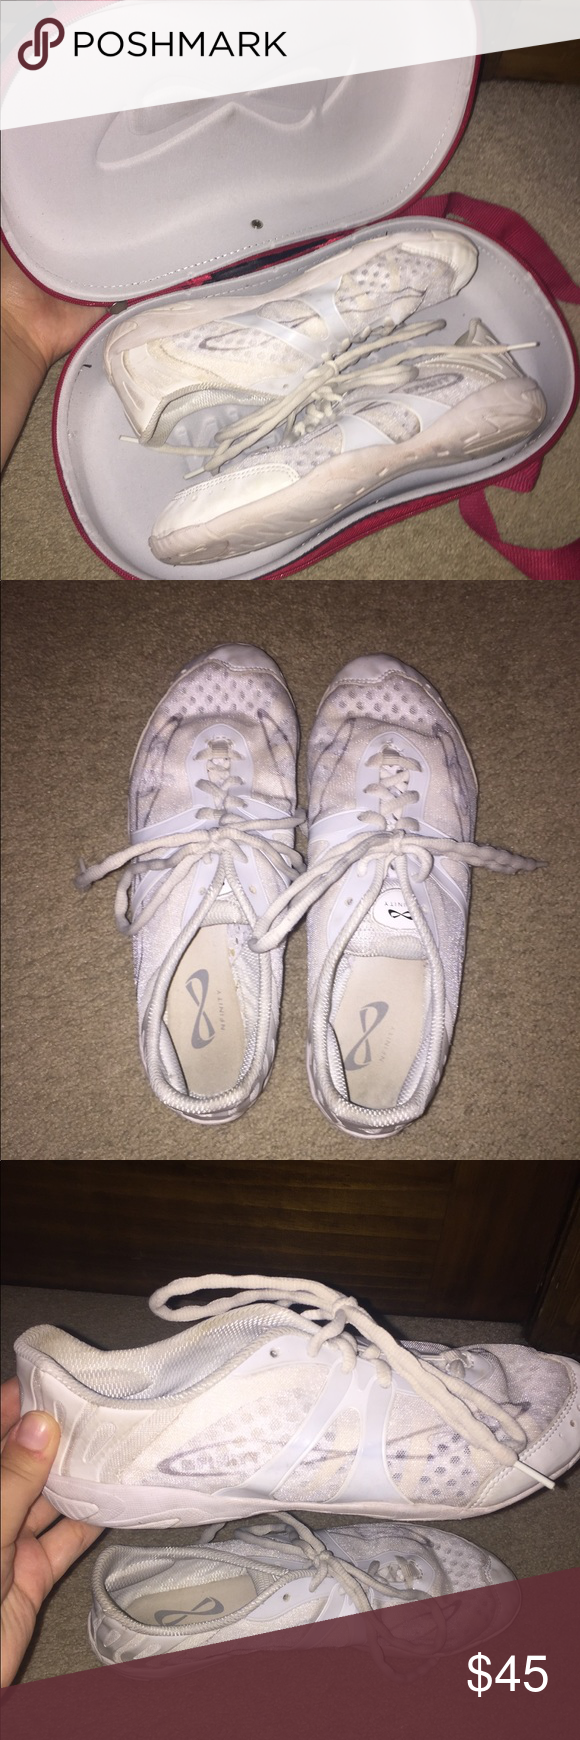 0cd02e3305 NFINITY VENGEANCE CHEER SHOES- SIZE 9.5 with case Used cheer shoes